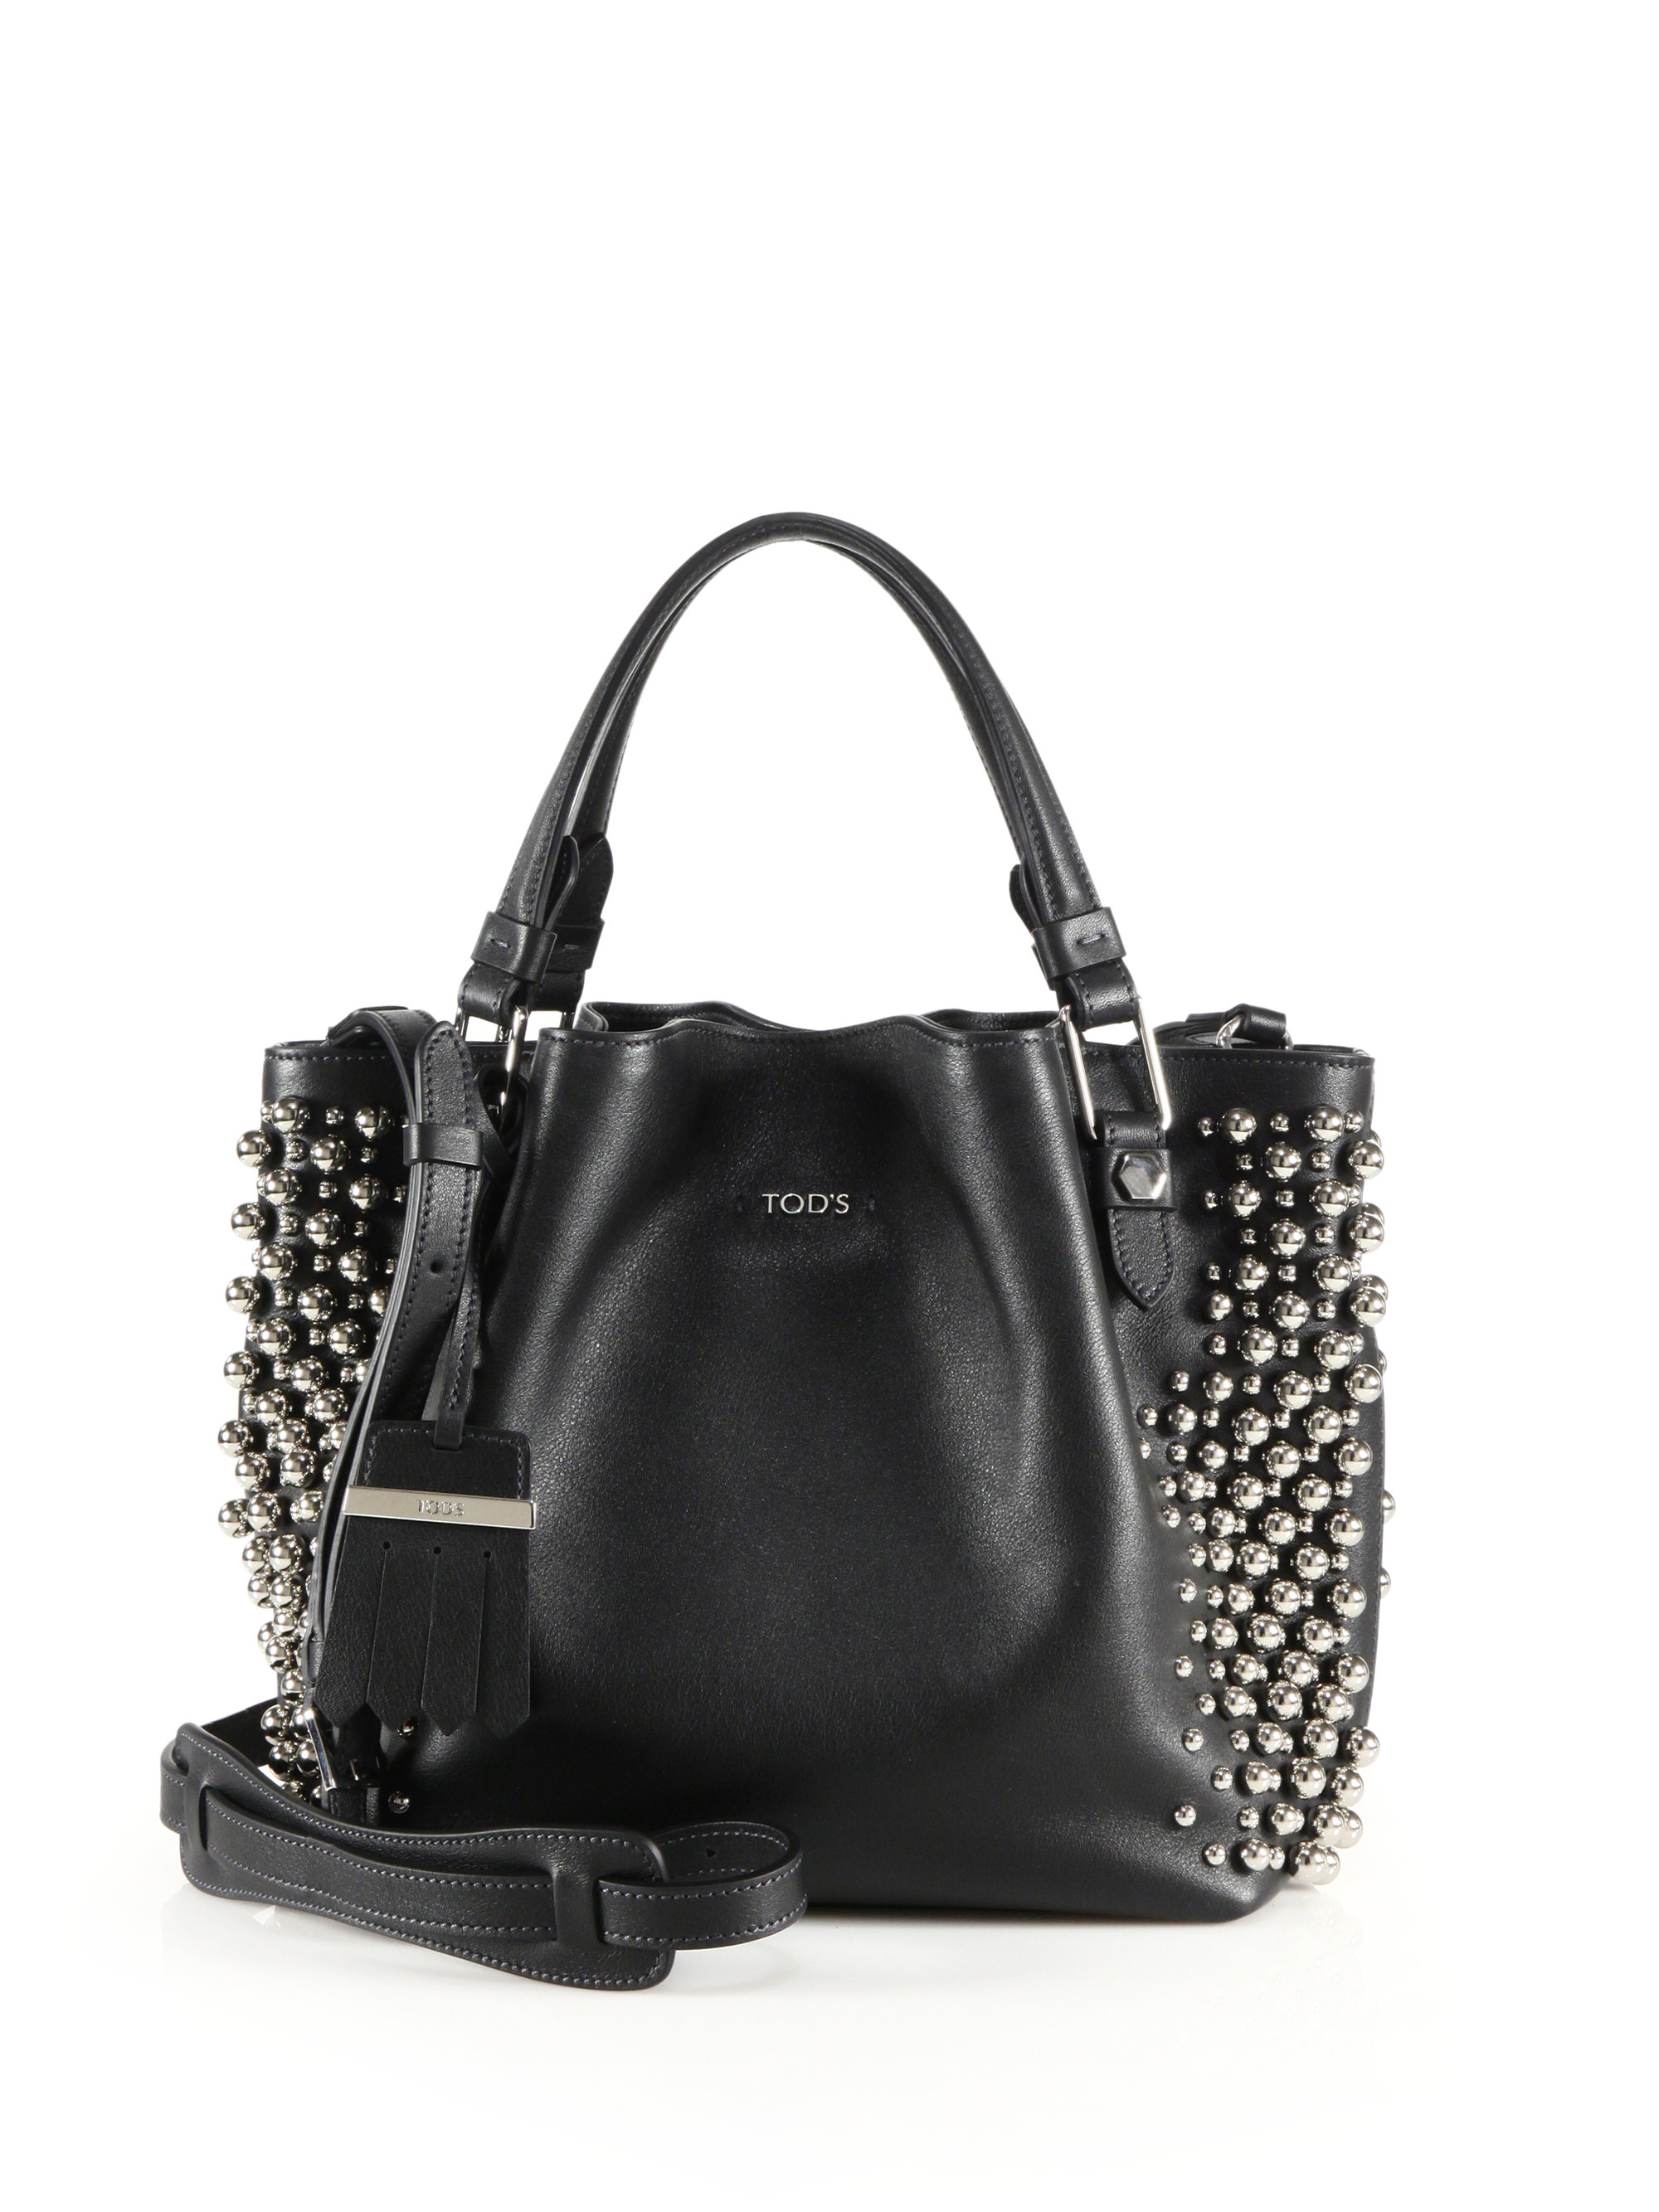 f819a44bcbf06 Tod's Flower Mini Studded Leather Tote in Black - Lyst